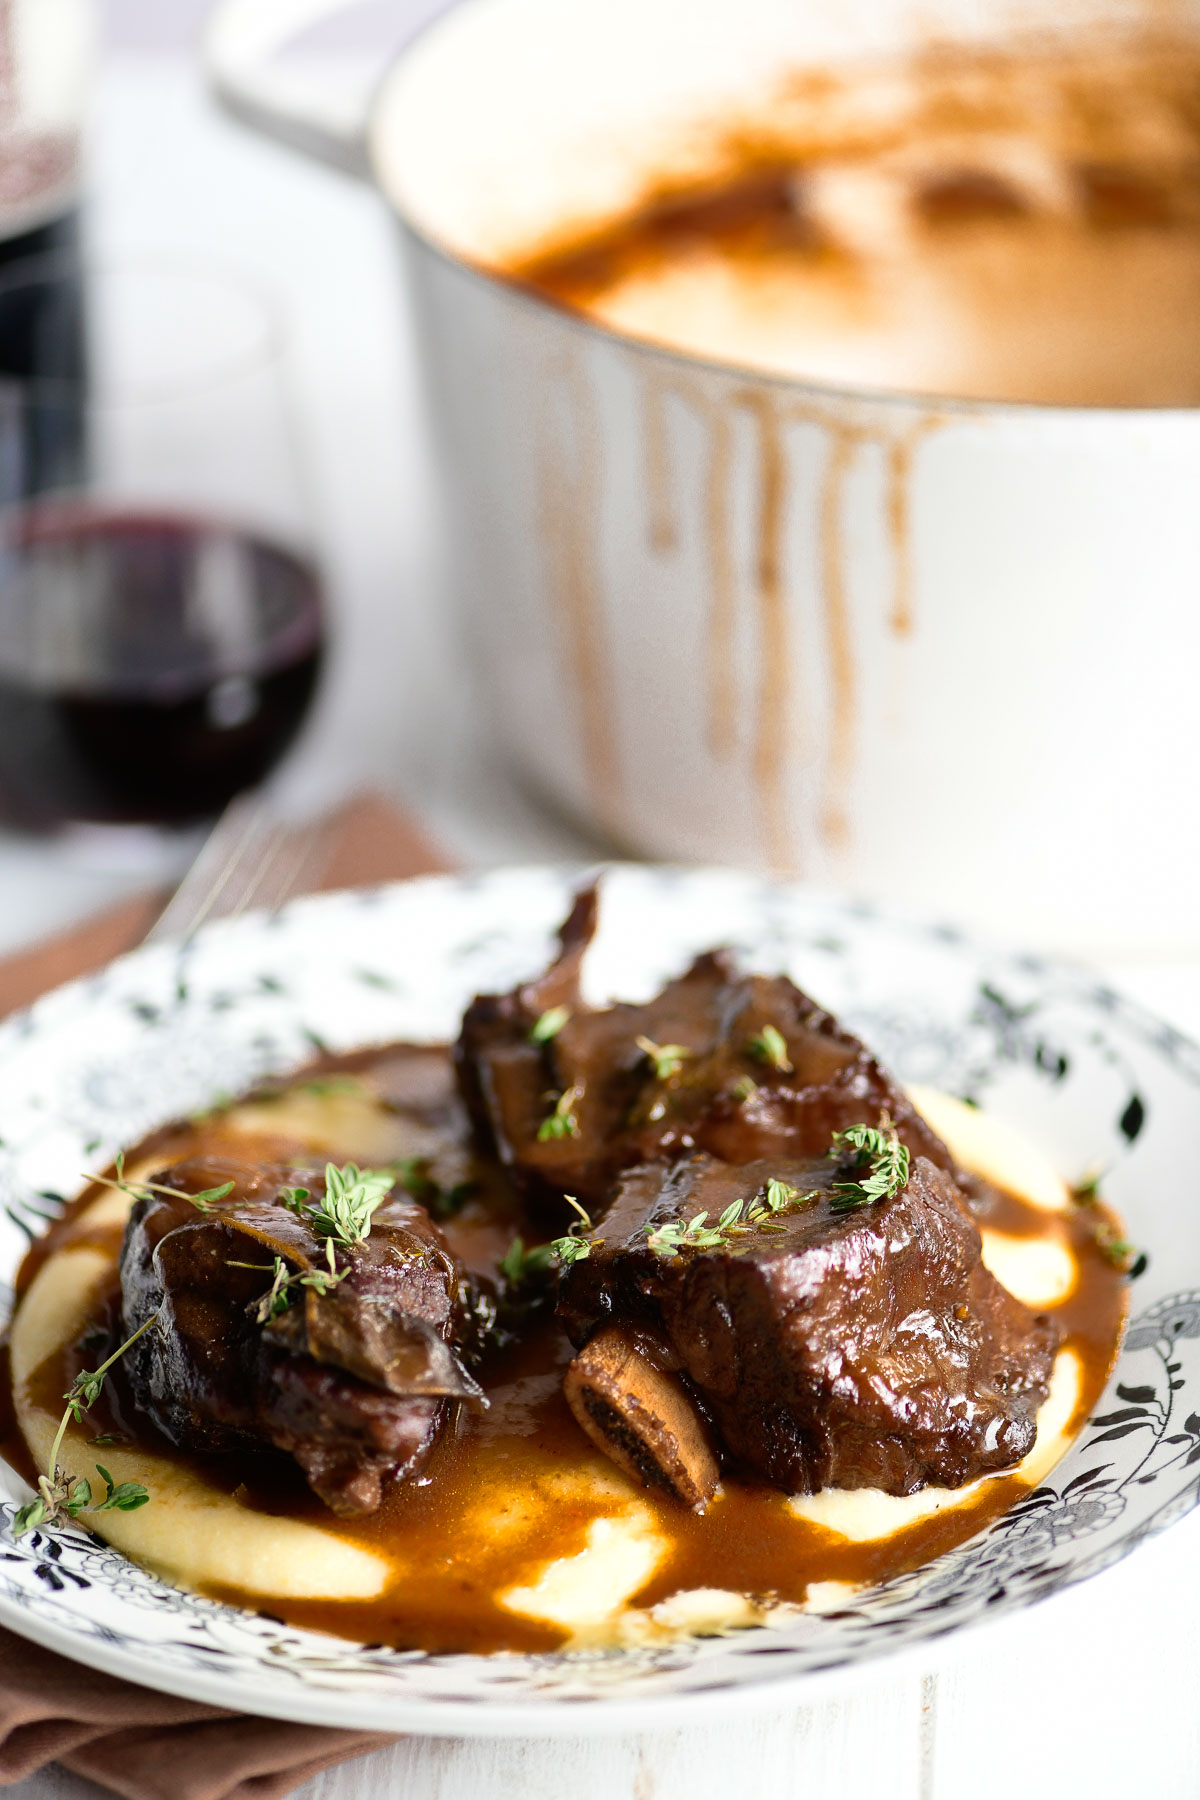 wine braised short ribs on polenta